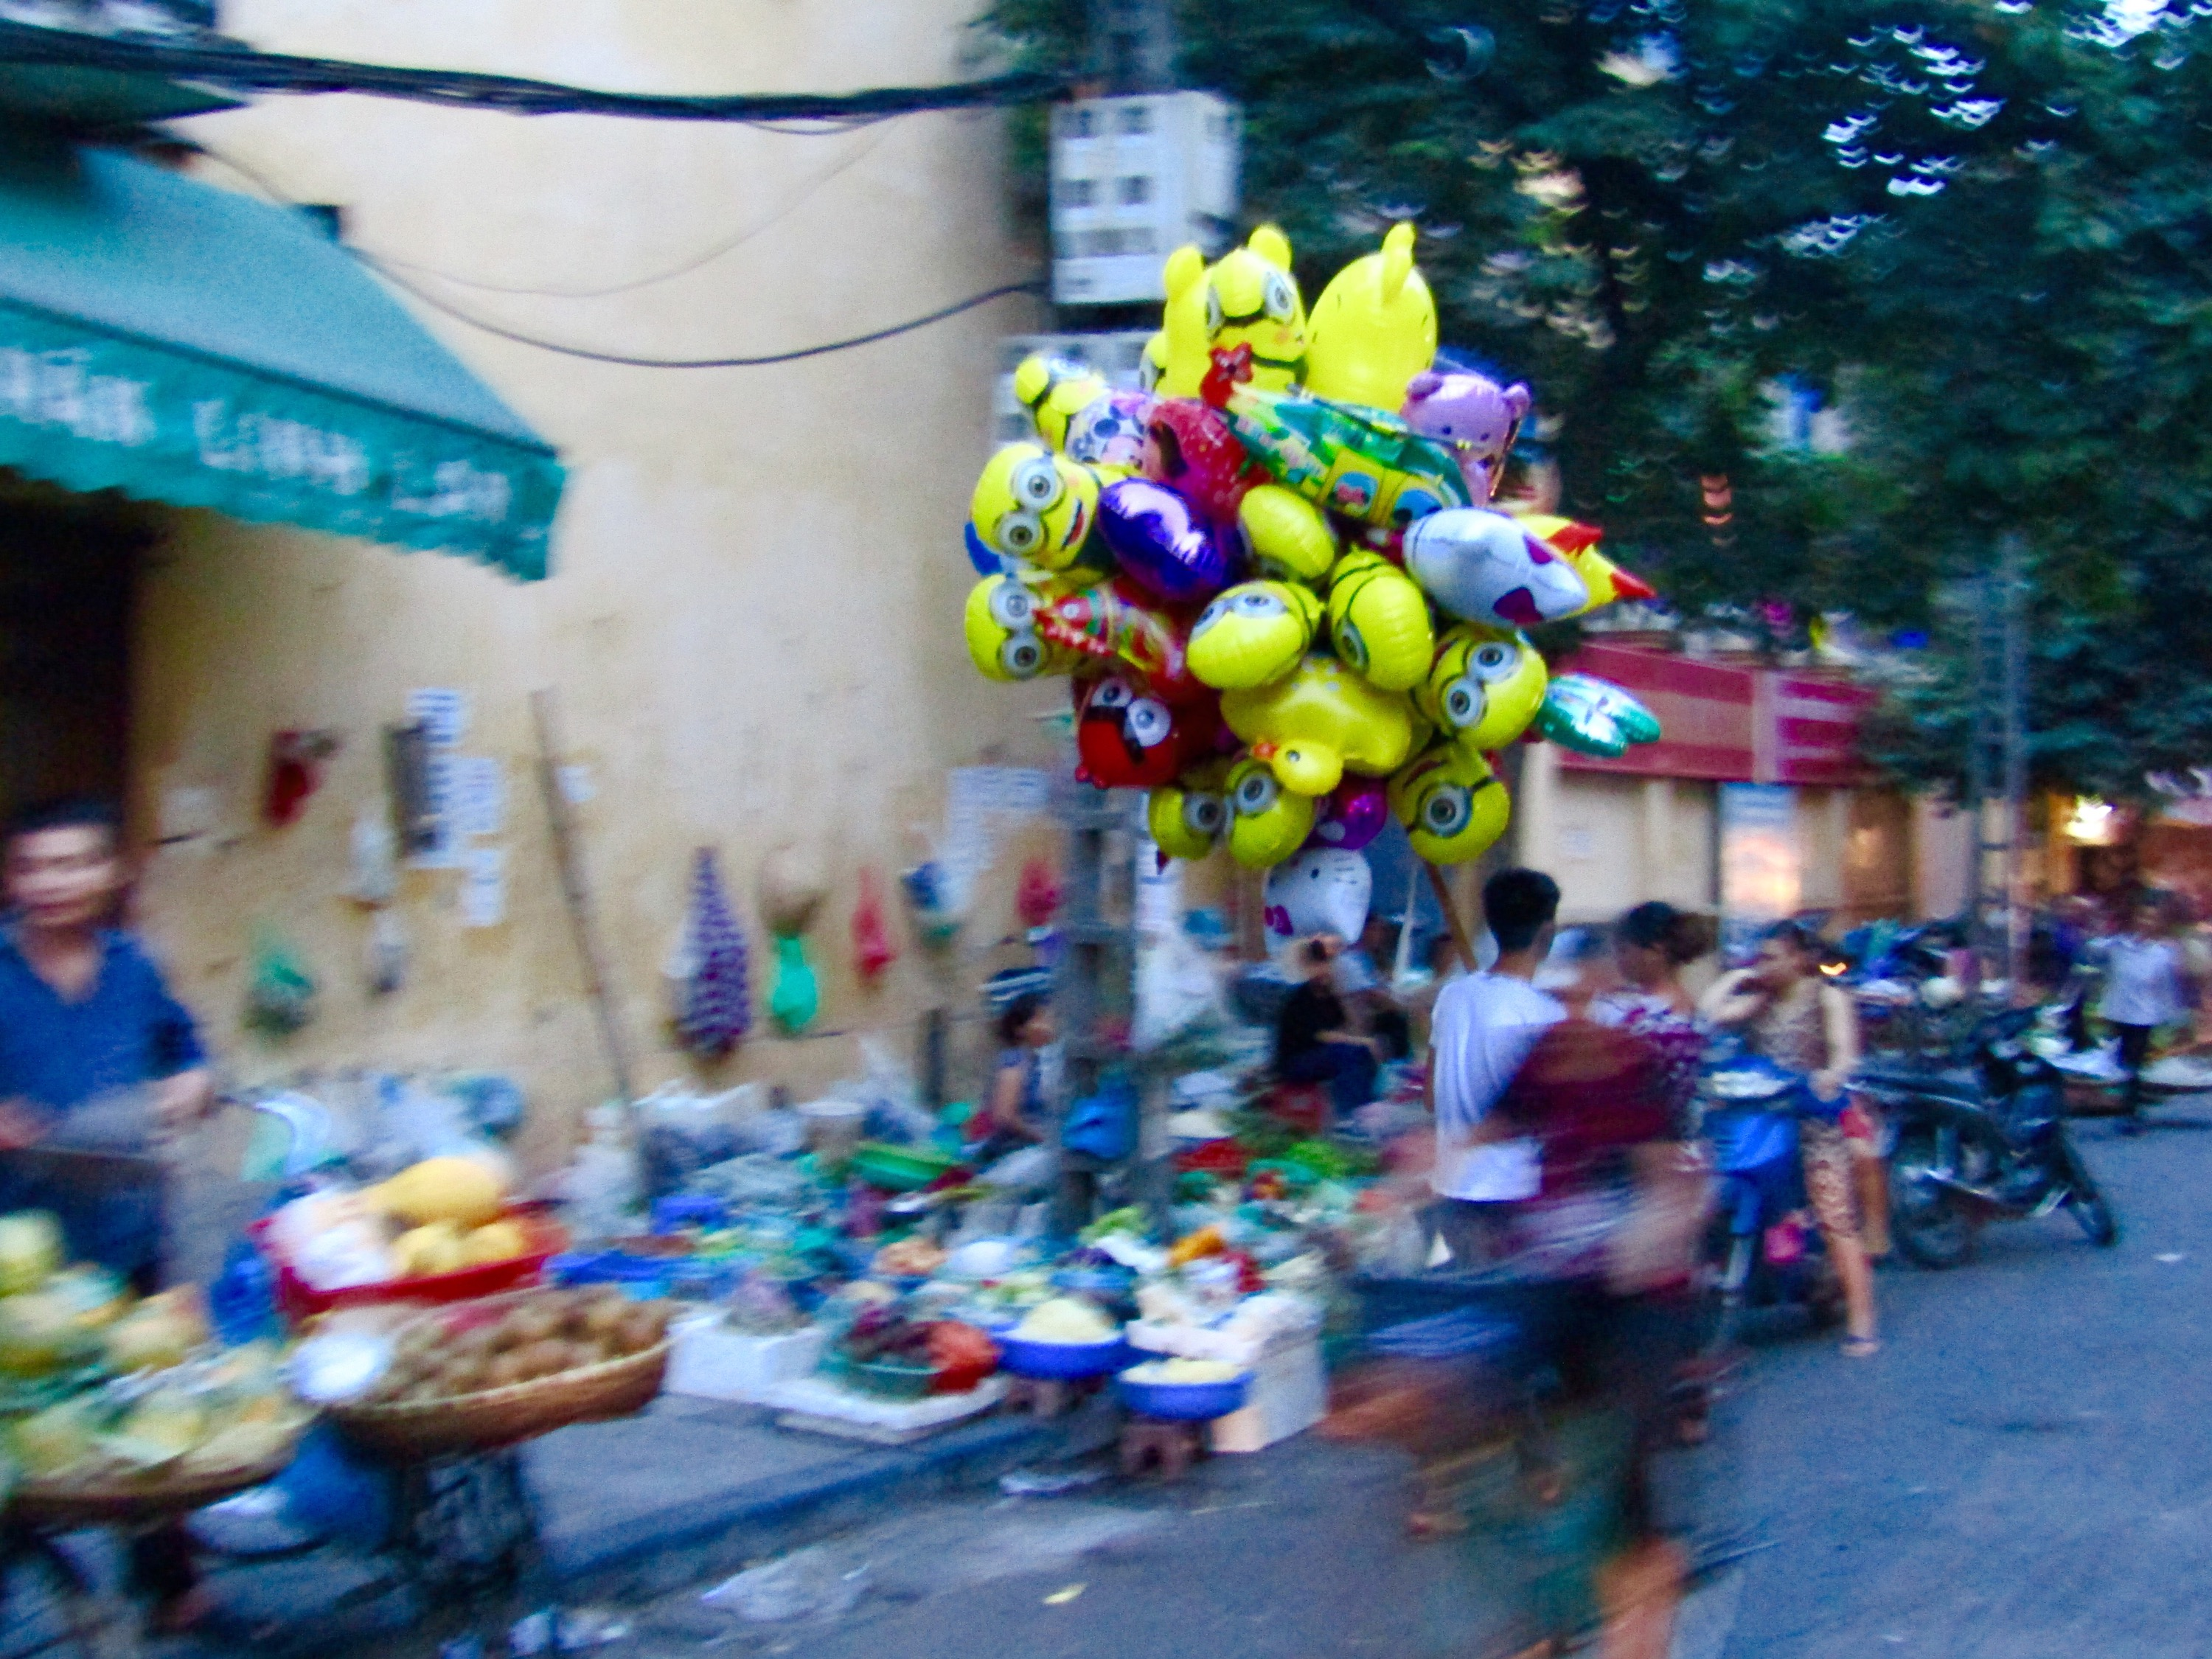 We followed this balloon vendor for a few blocks as he tried to unload one of his many Minions.